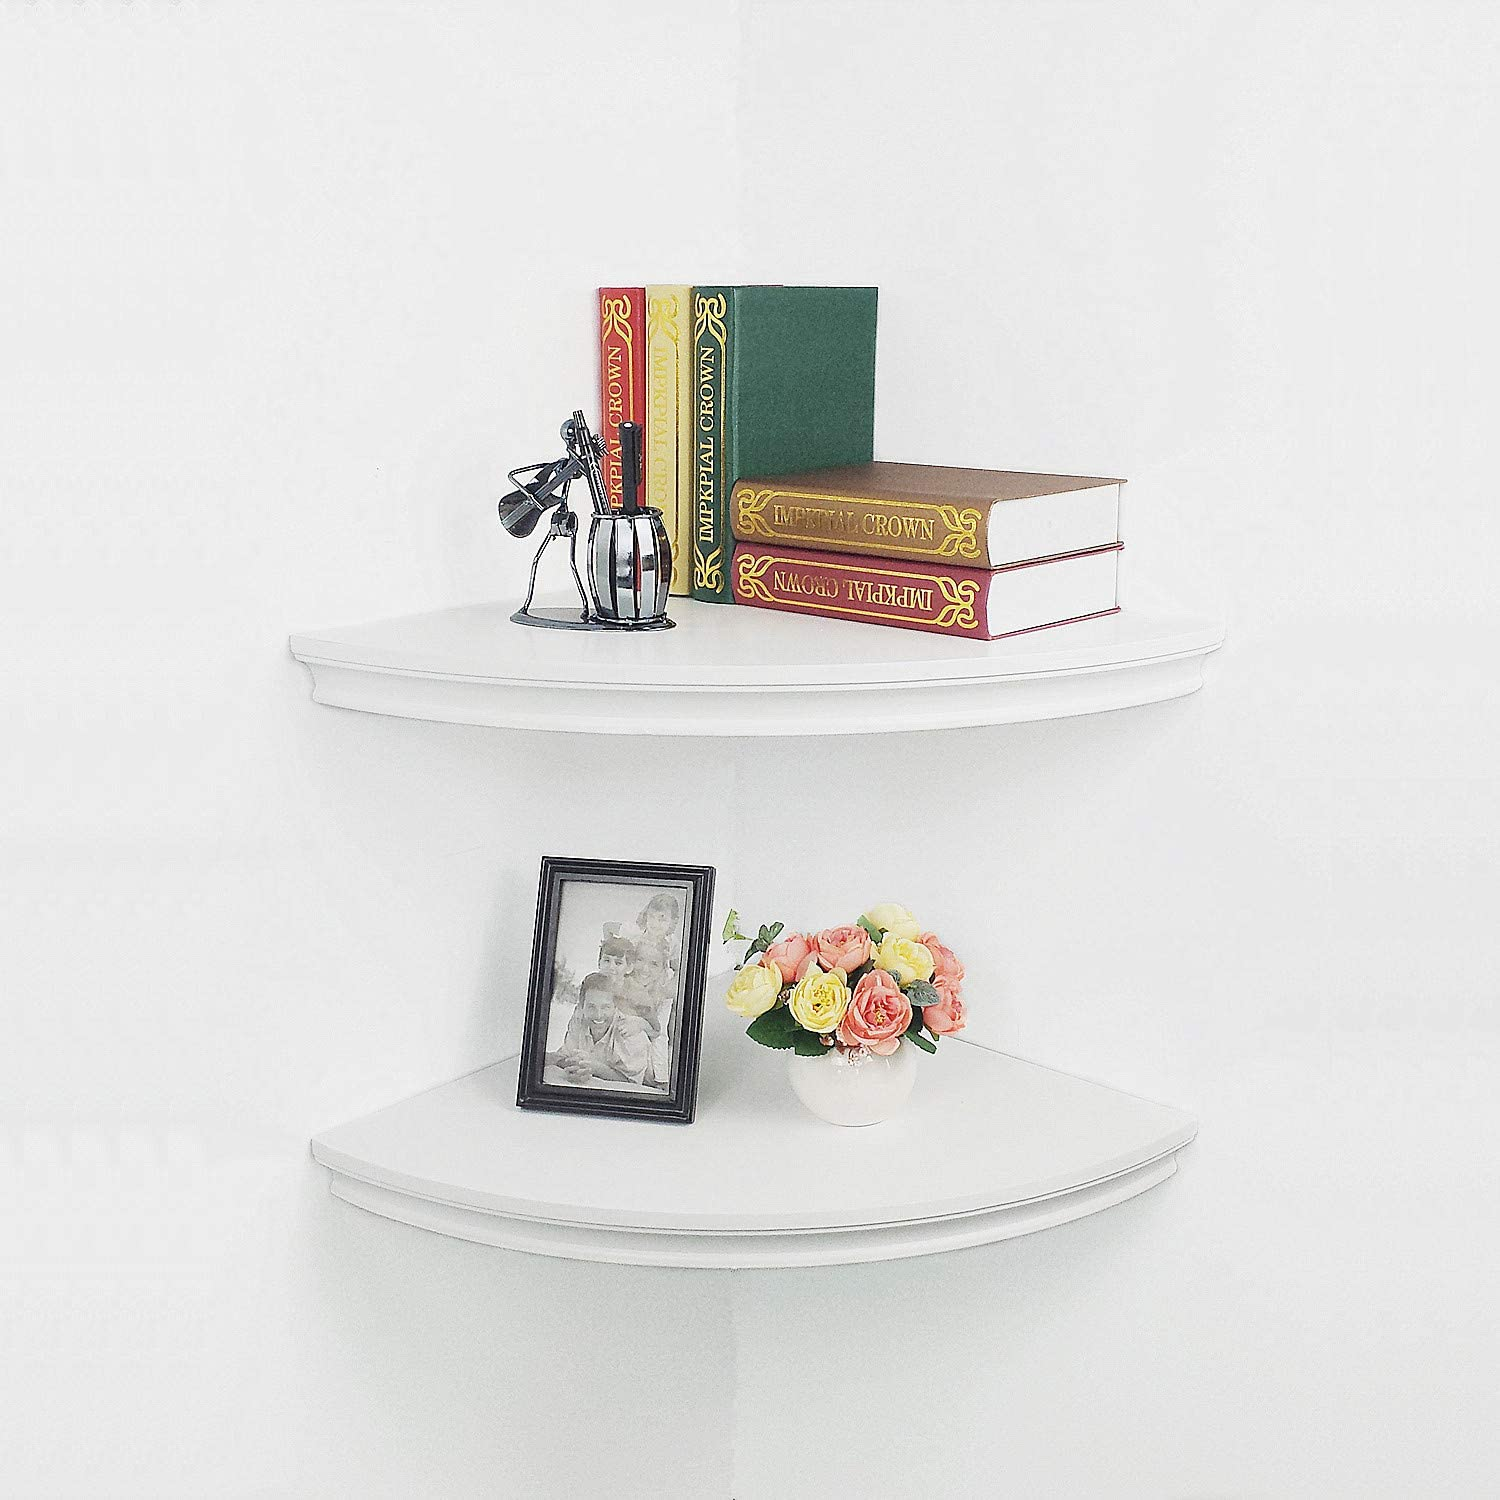 "Floating Corner Shelves Wall Mounted,Set of 2 Radial Classic Crown Molding Design for Bedroom,Living Room,Bathroom,Kitchen,Approx 17"" White"